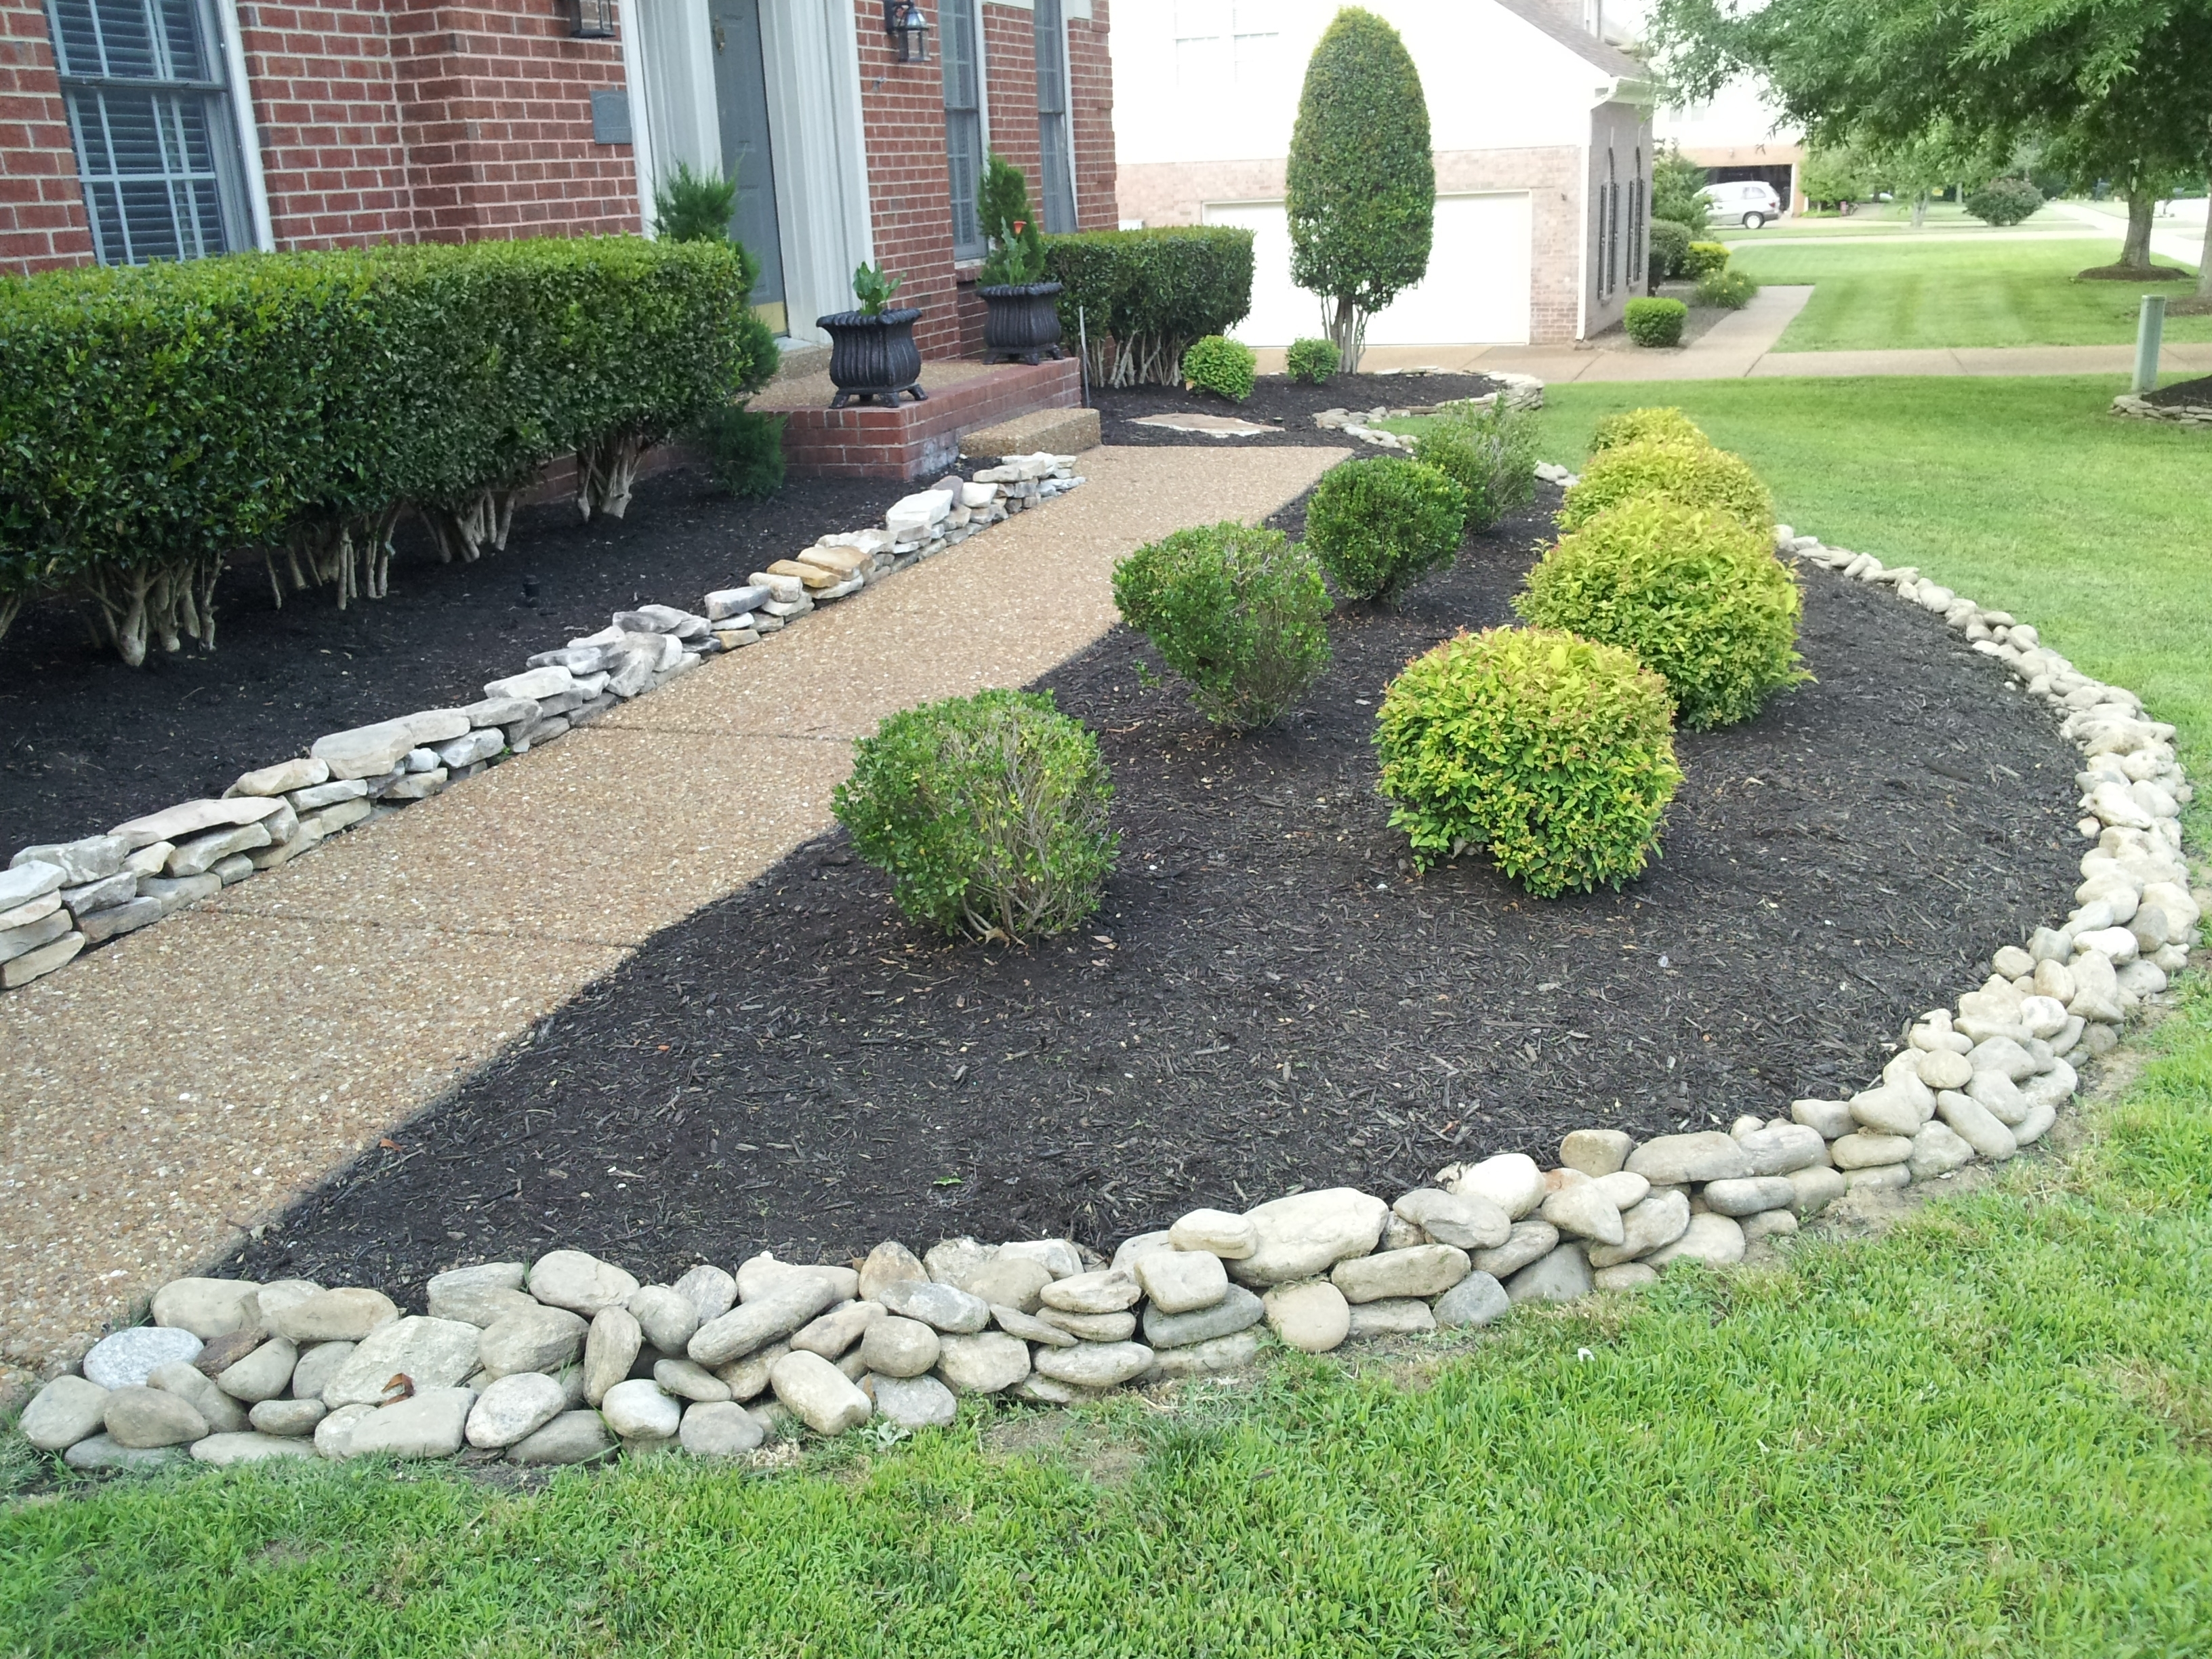 Landscape Types Of Landscaping Rock With Gravel Decorative Intended For Gravel Landscaping Ideas Gravel Landscaping Ideas Fresh